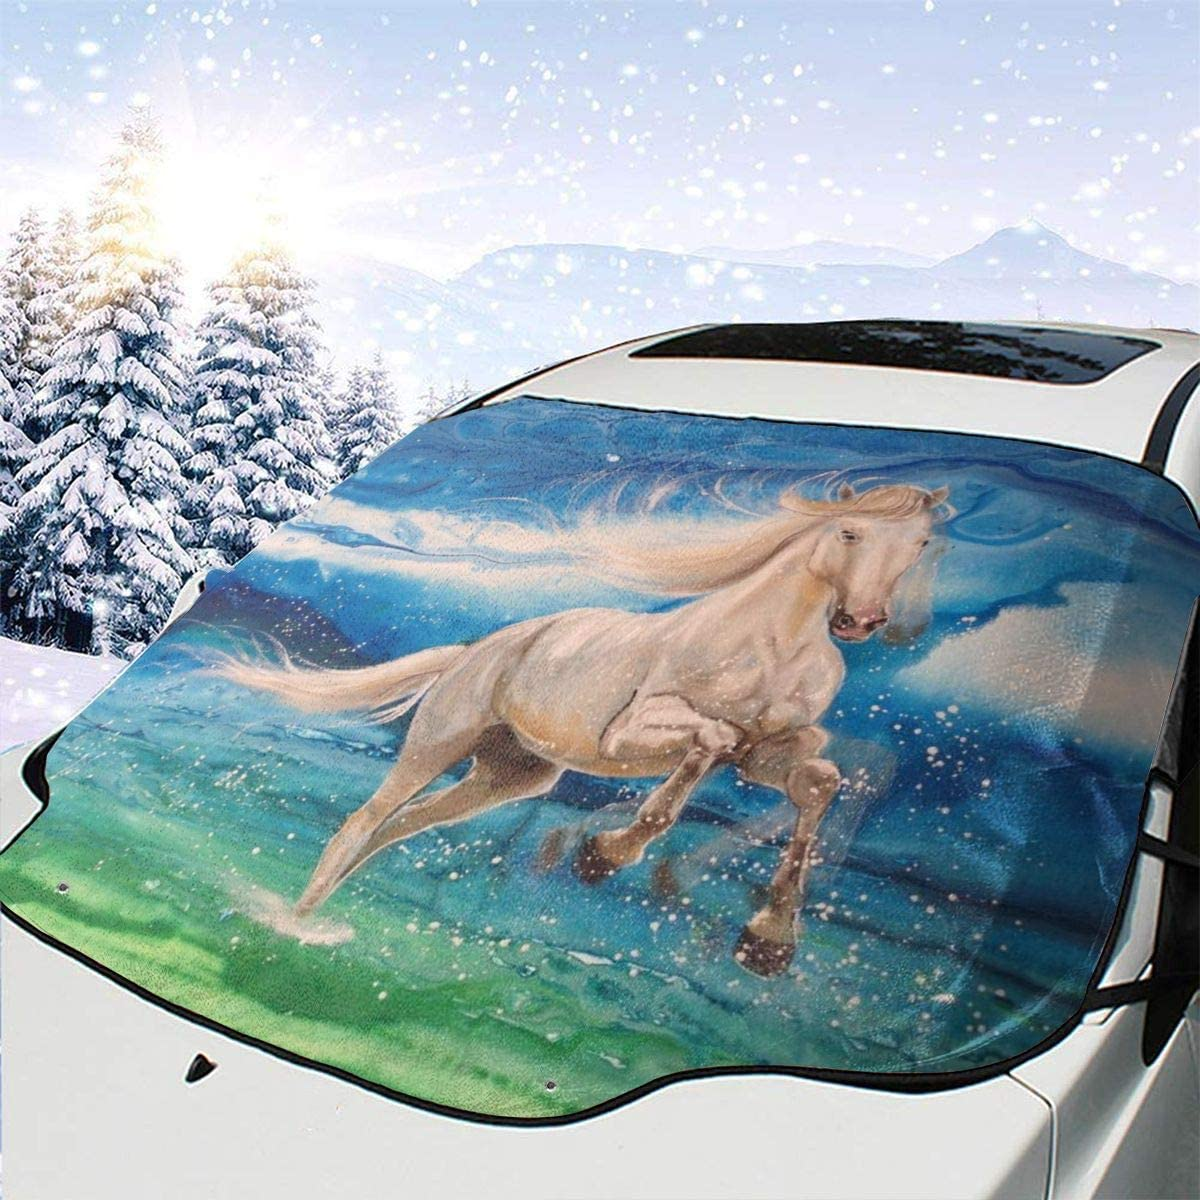 THONFIRE Car Front Window Windshields Winter Sunshade Animals Horse Beauty Cover Windproof Blocks UV Rays Damage Free Visor Protector Minivan Spring Heat Insulation